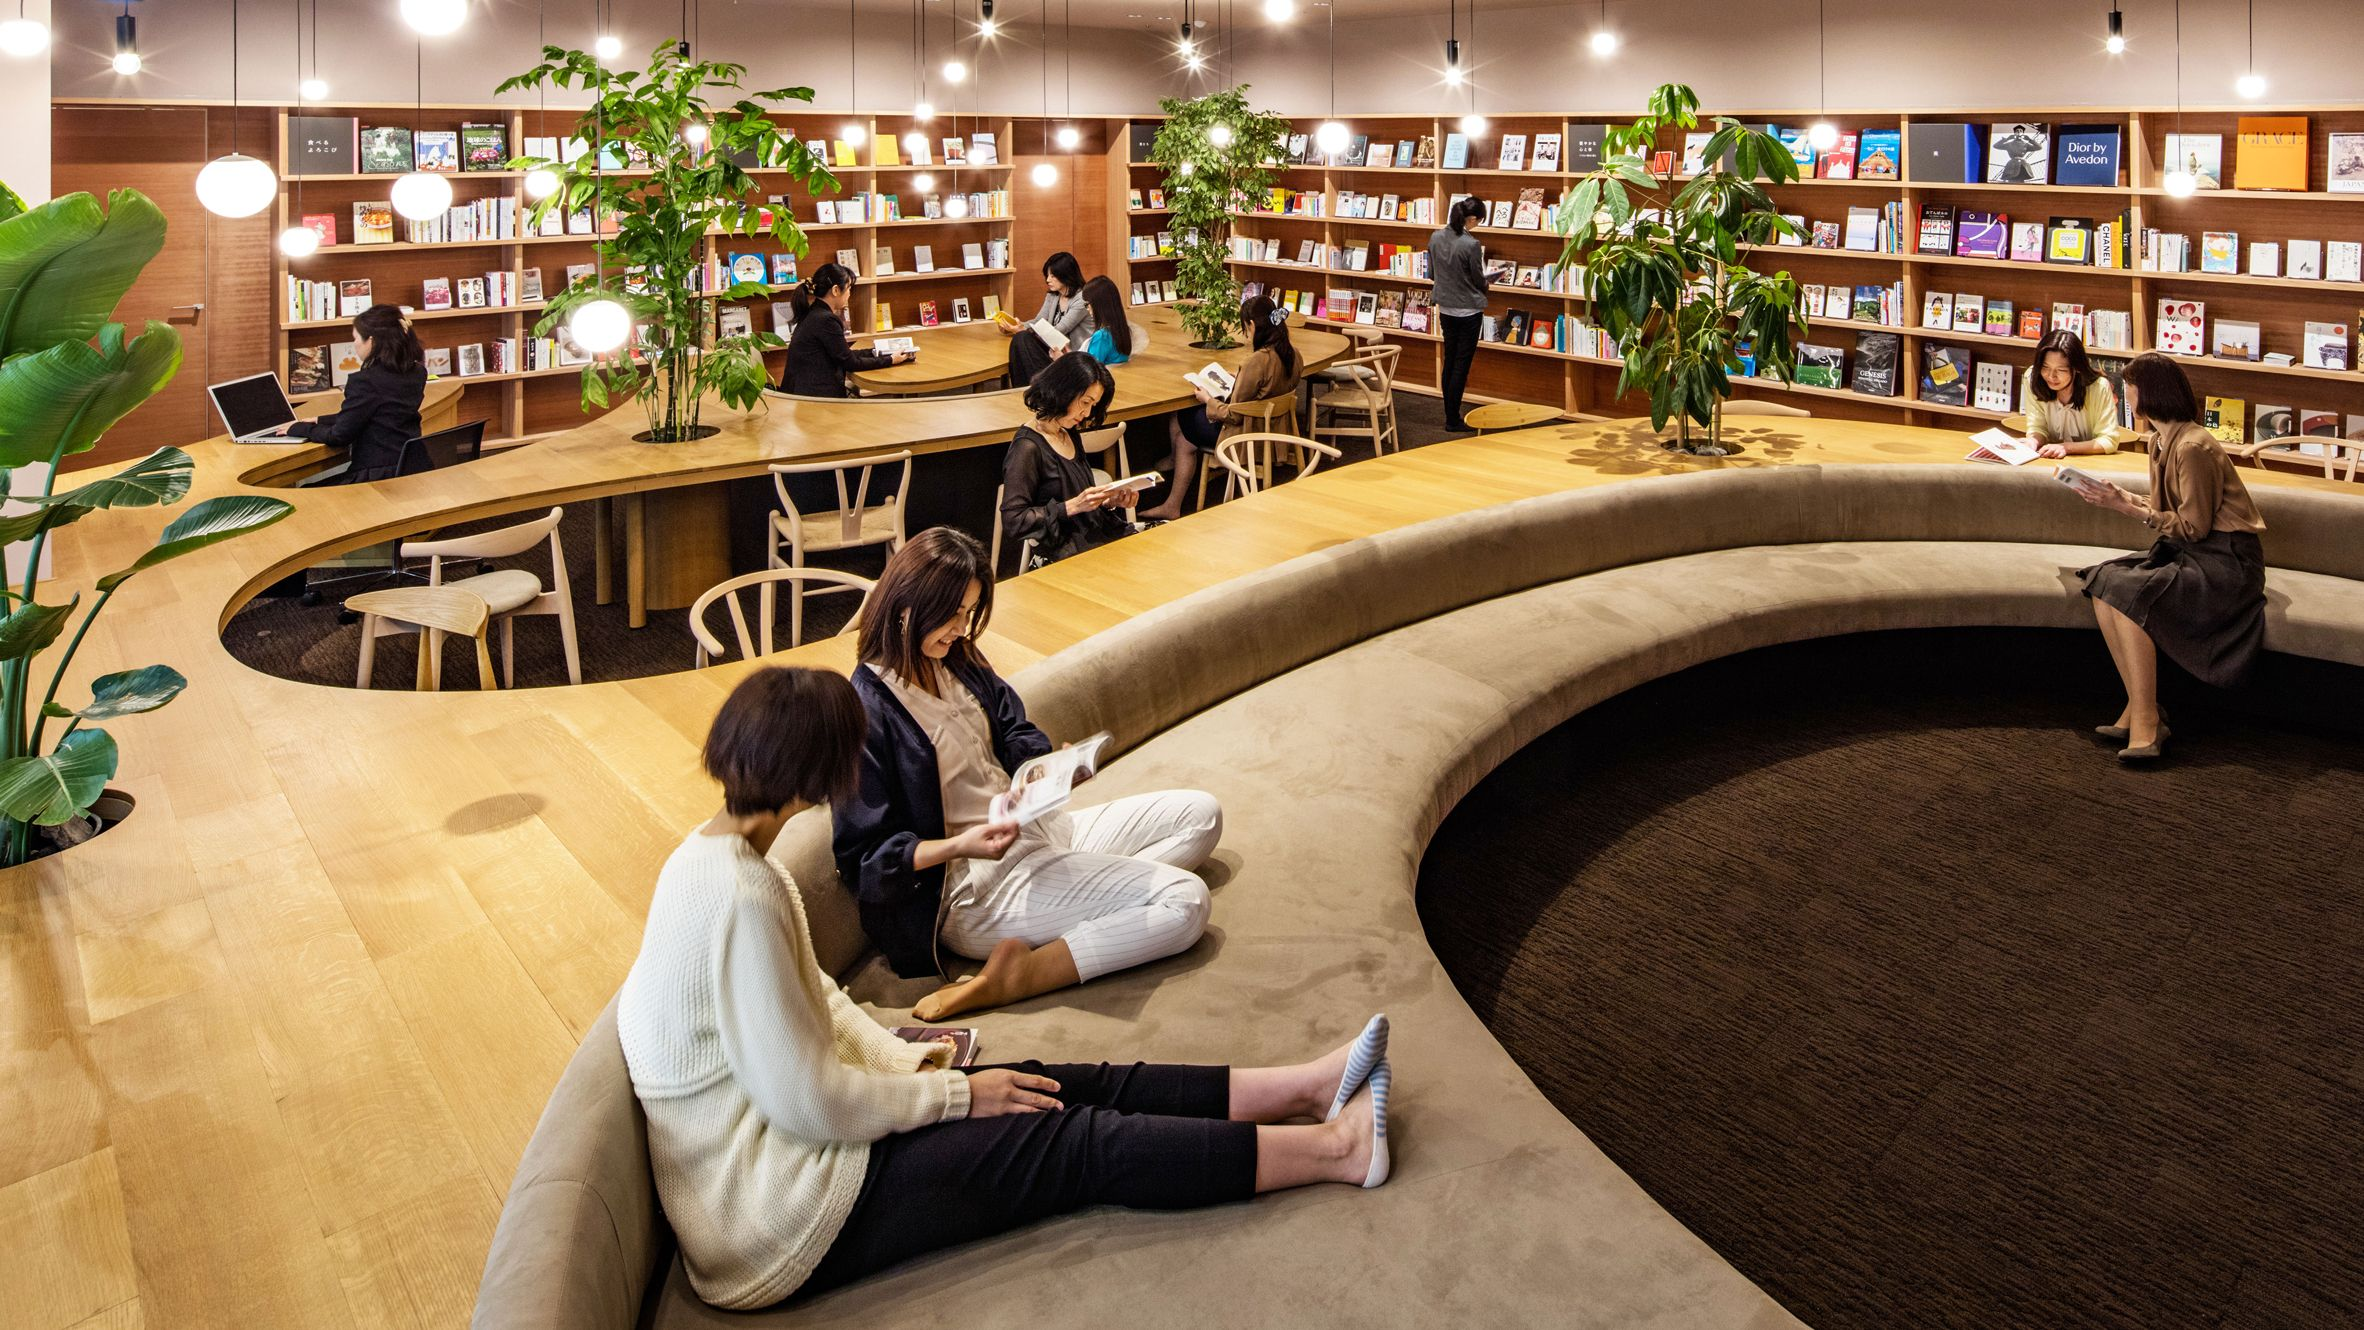 Architect Masayoshi Nakanishi Has Created A Library Aimed Exclusively At Women In Fukui Japan